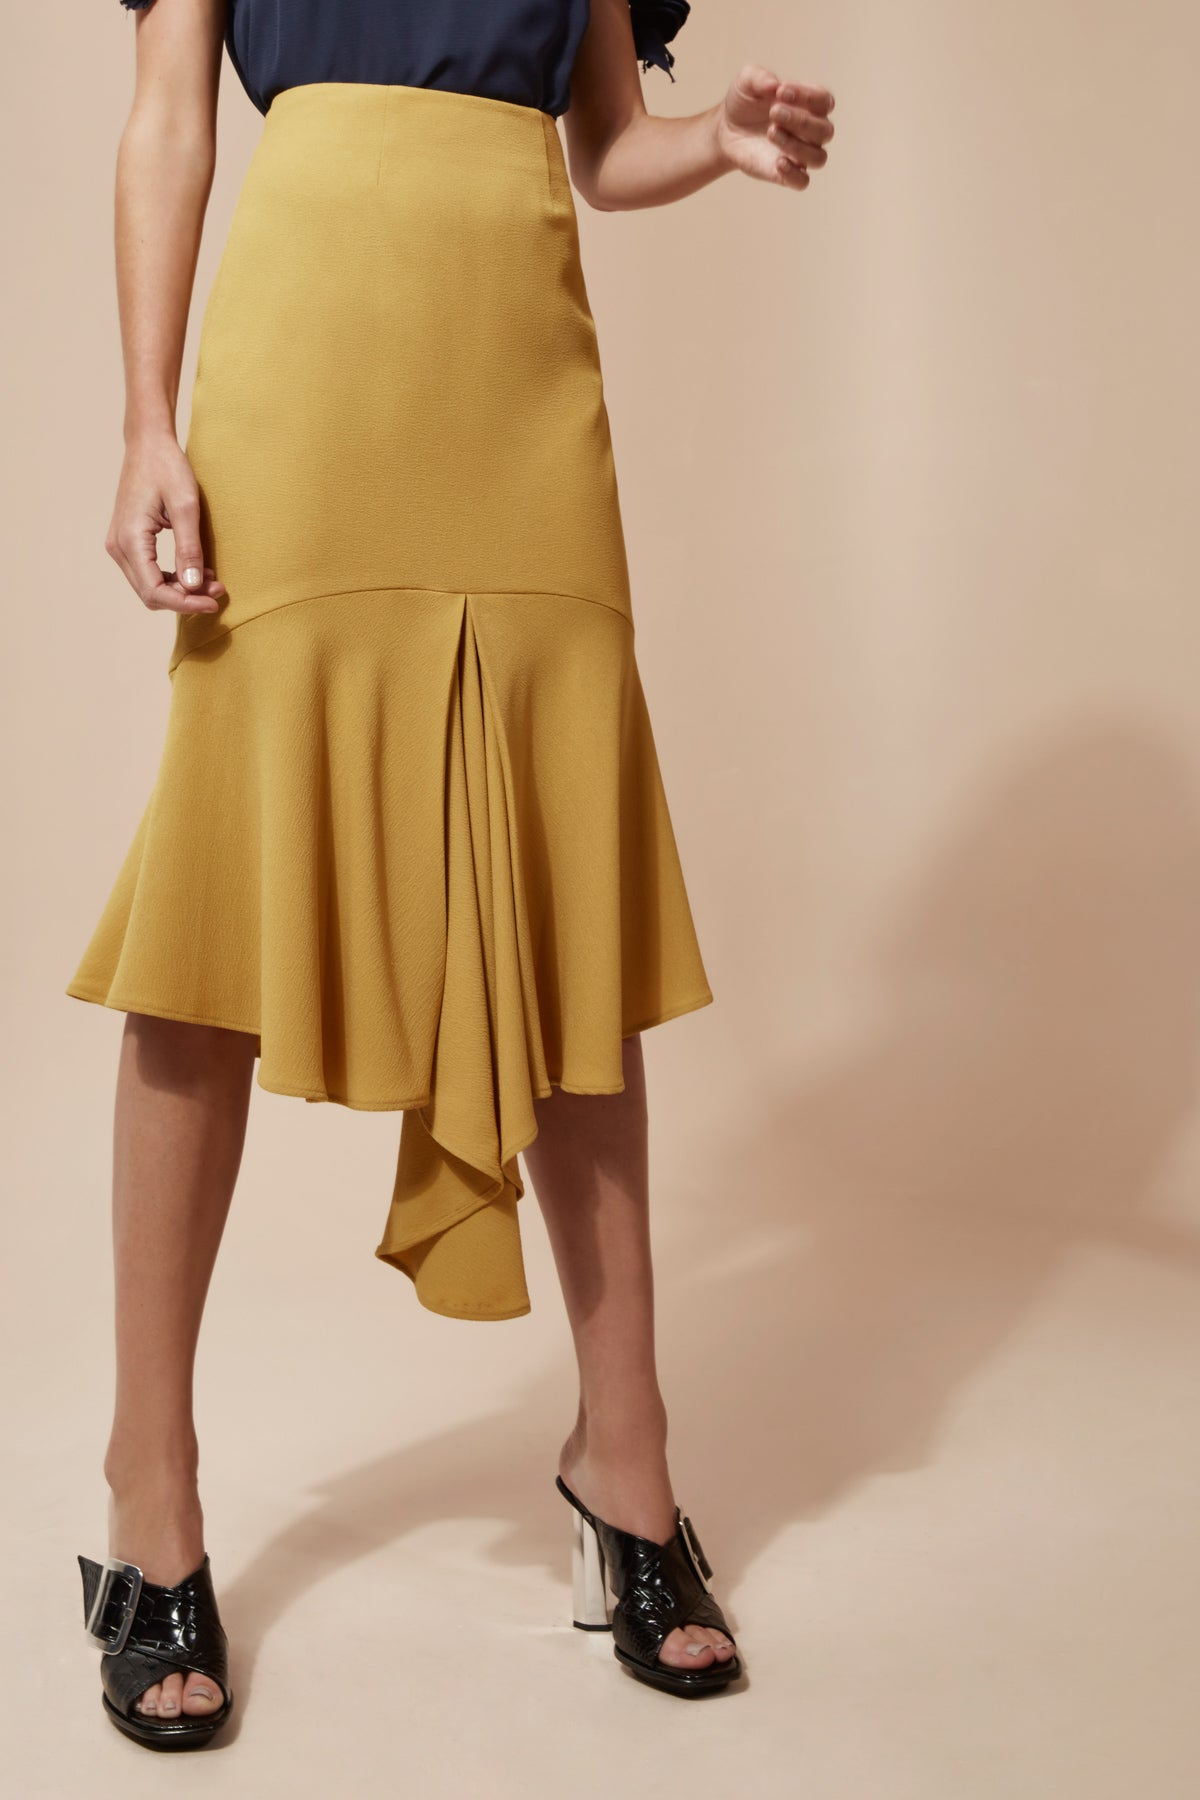 FUSION SKIRT chartreuse